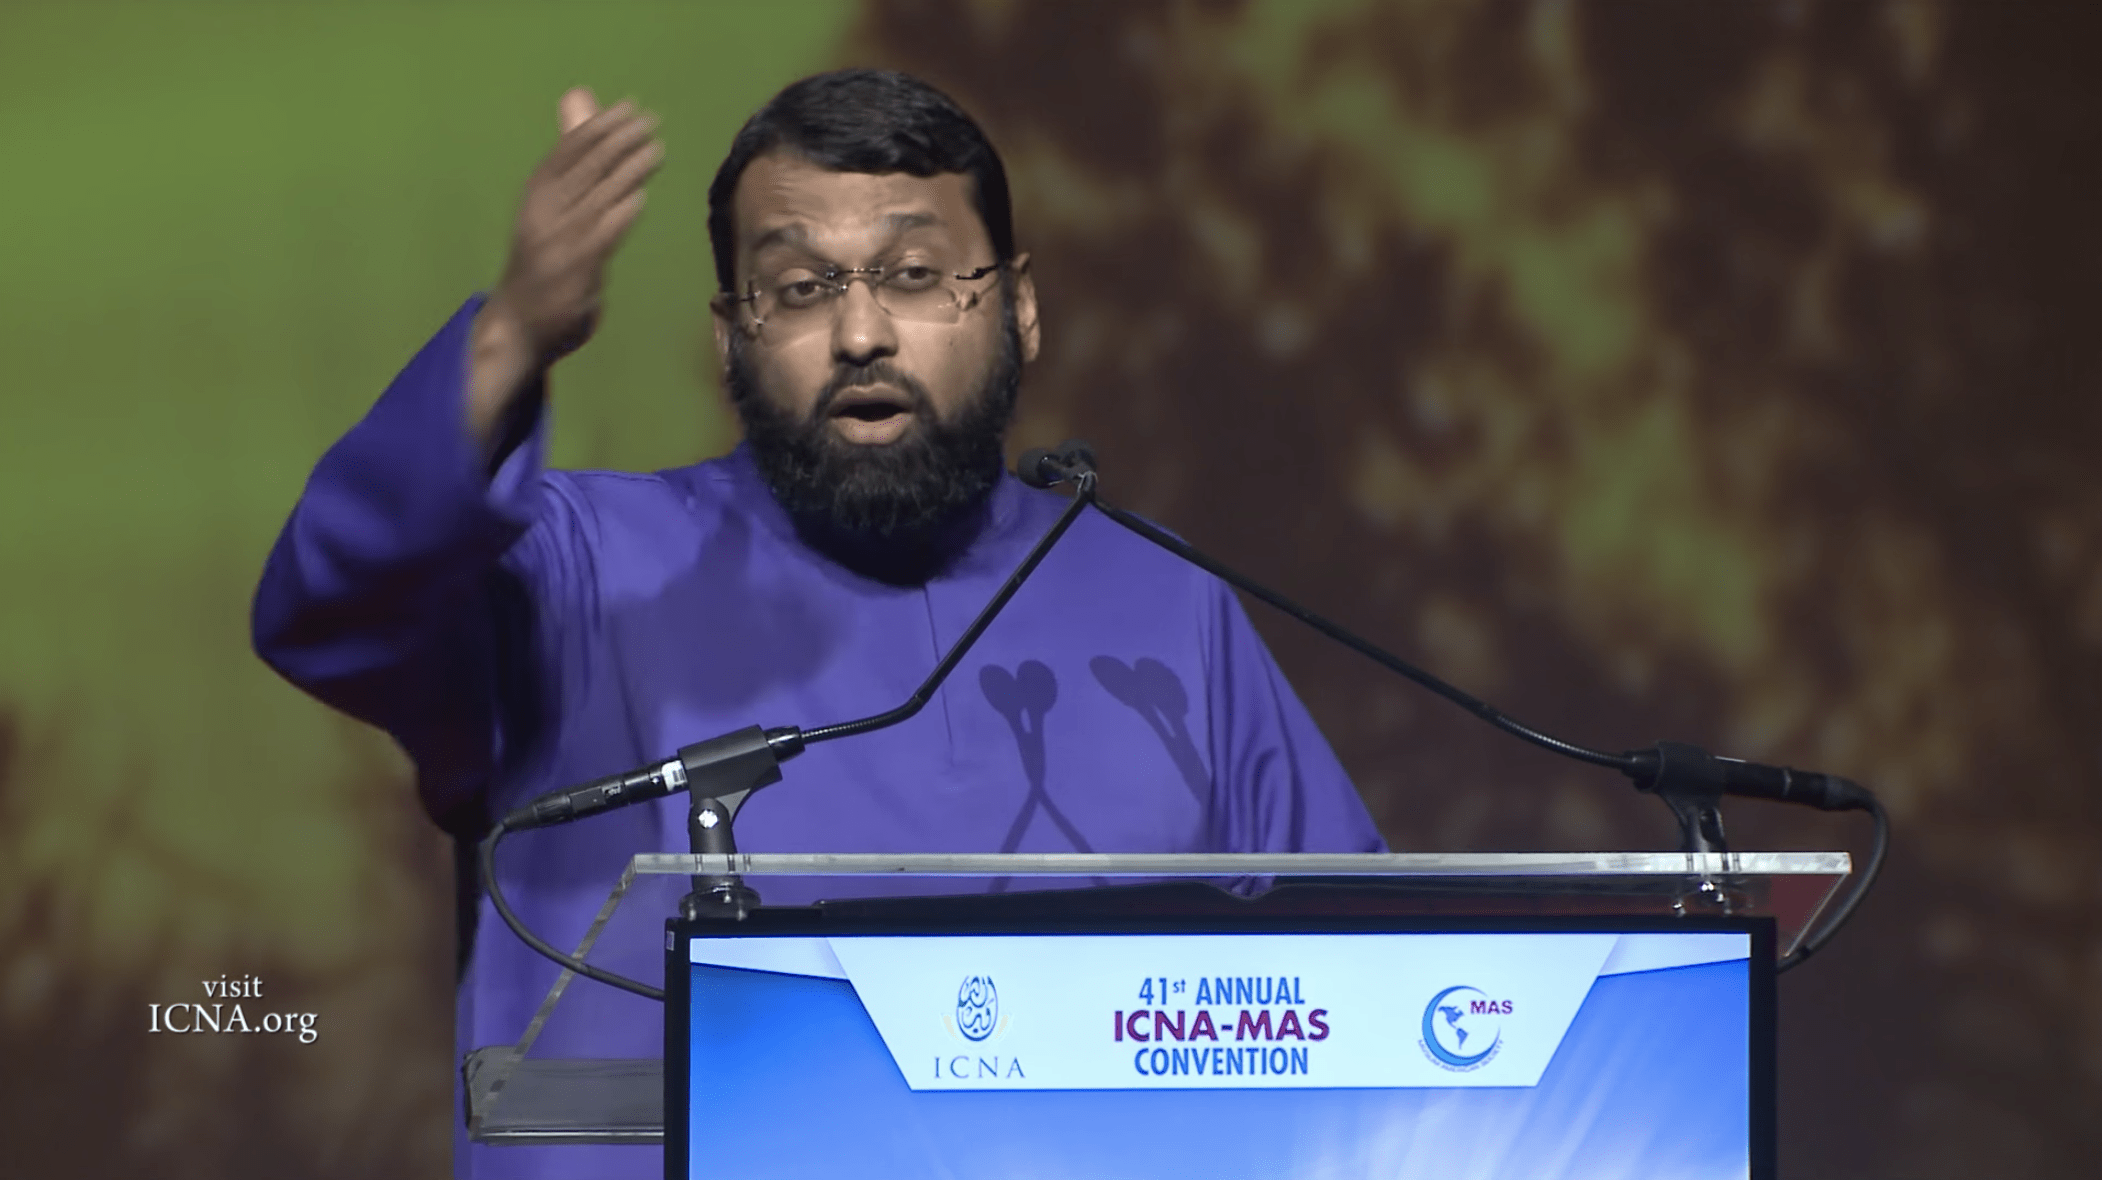 Yasir Qadhi – Standing Firm on Our Principles